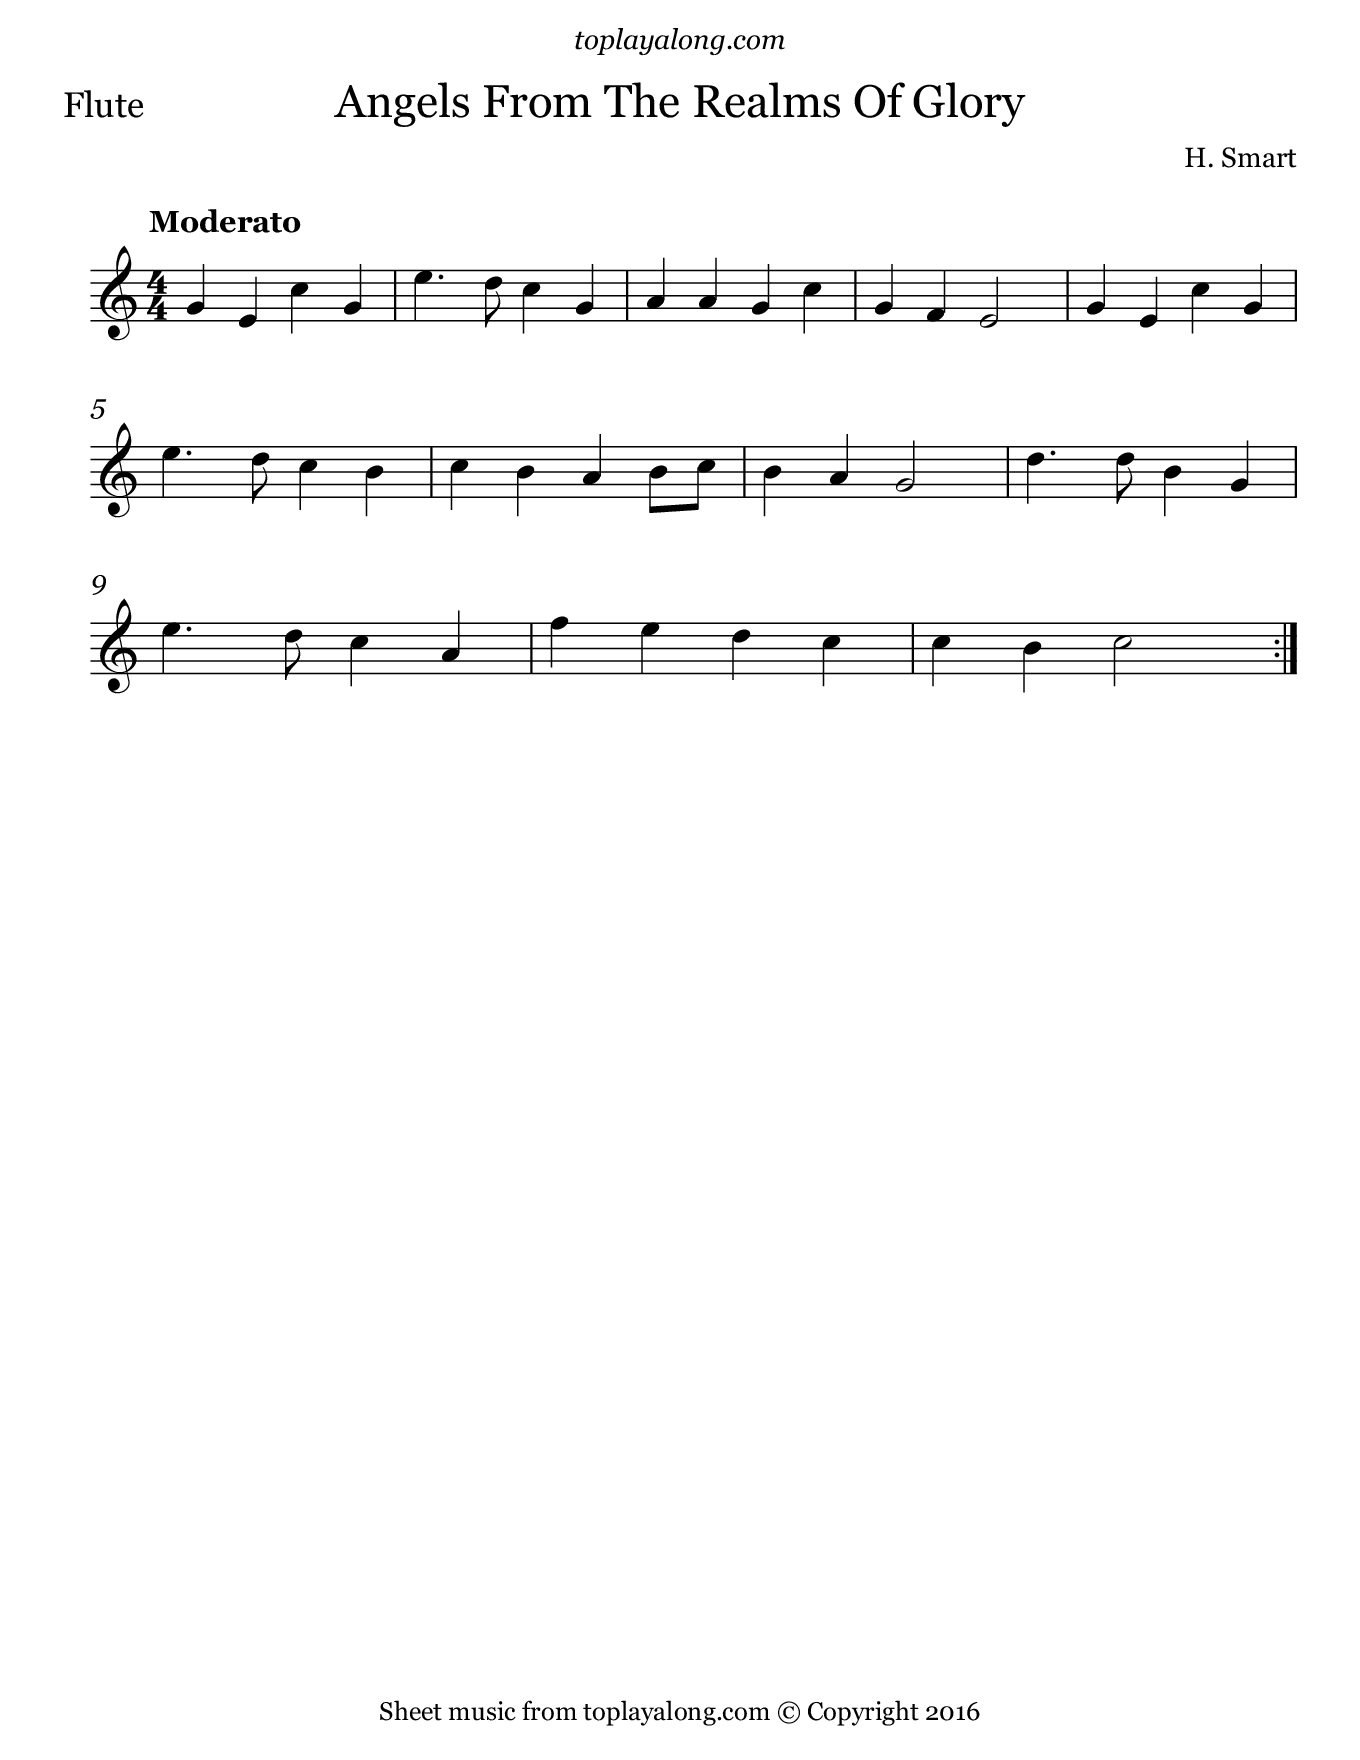 Angels from the Realms of Glory. Sheet music for Flute, page 1.